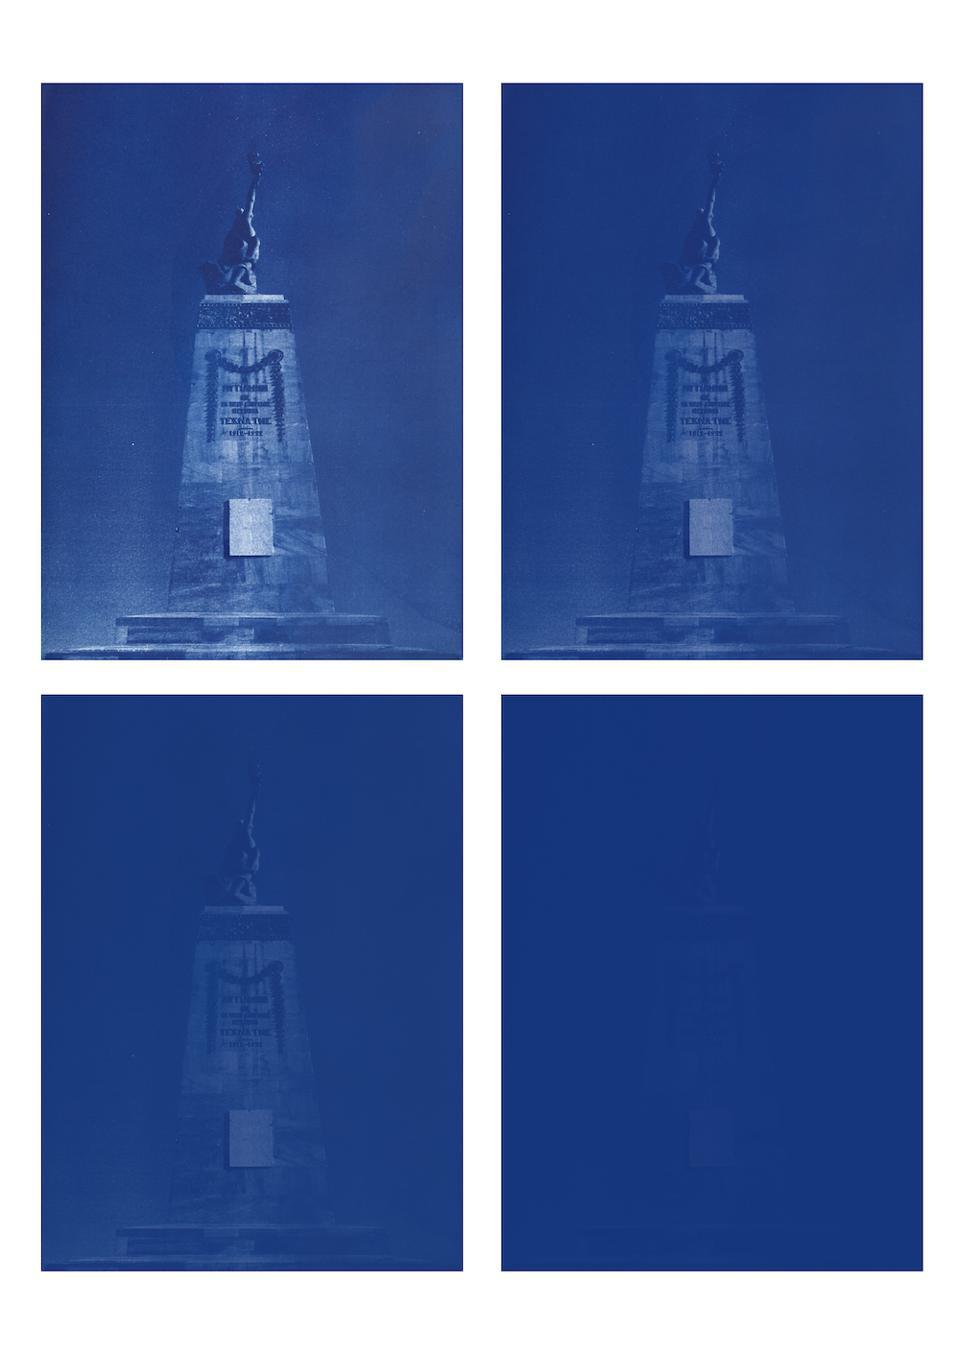 Sponsored by BMW for 2019 Paris Photo, Emeric Lhuisset ″L'autre rive″ concludes with a series of fading blue renderings through cyanotype